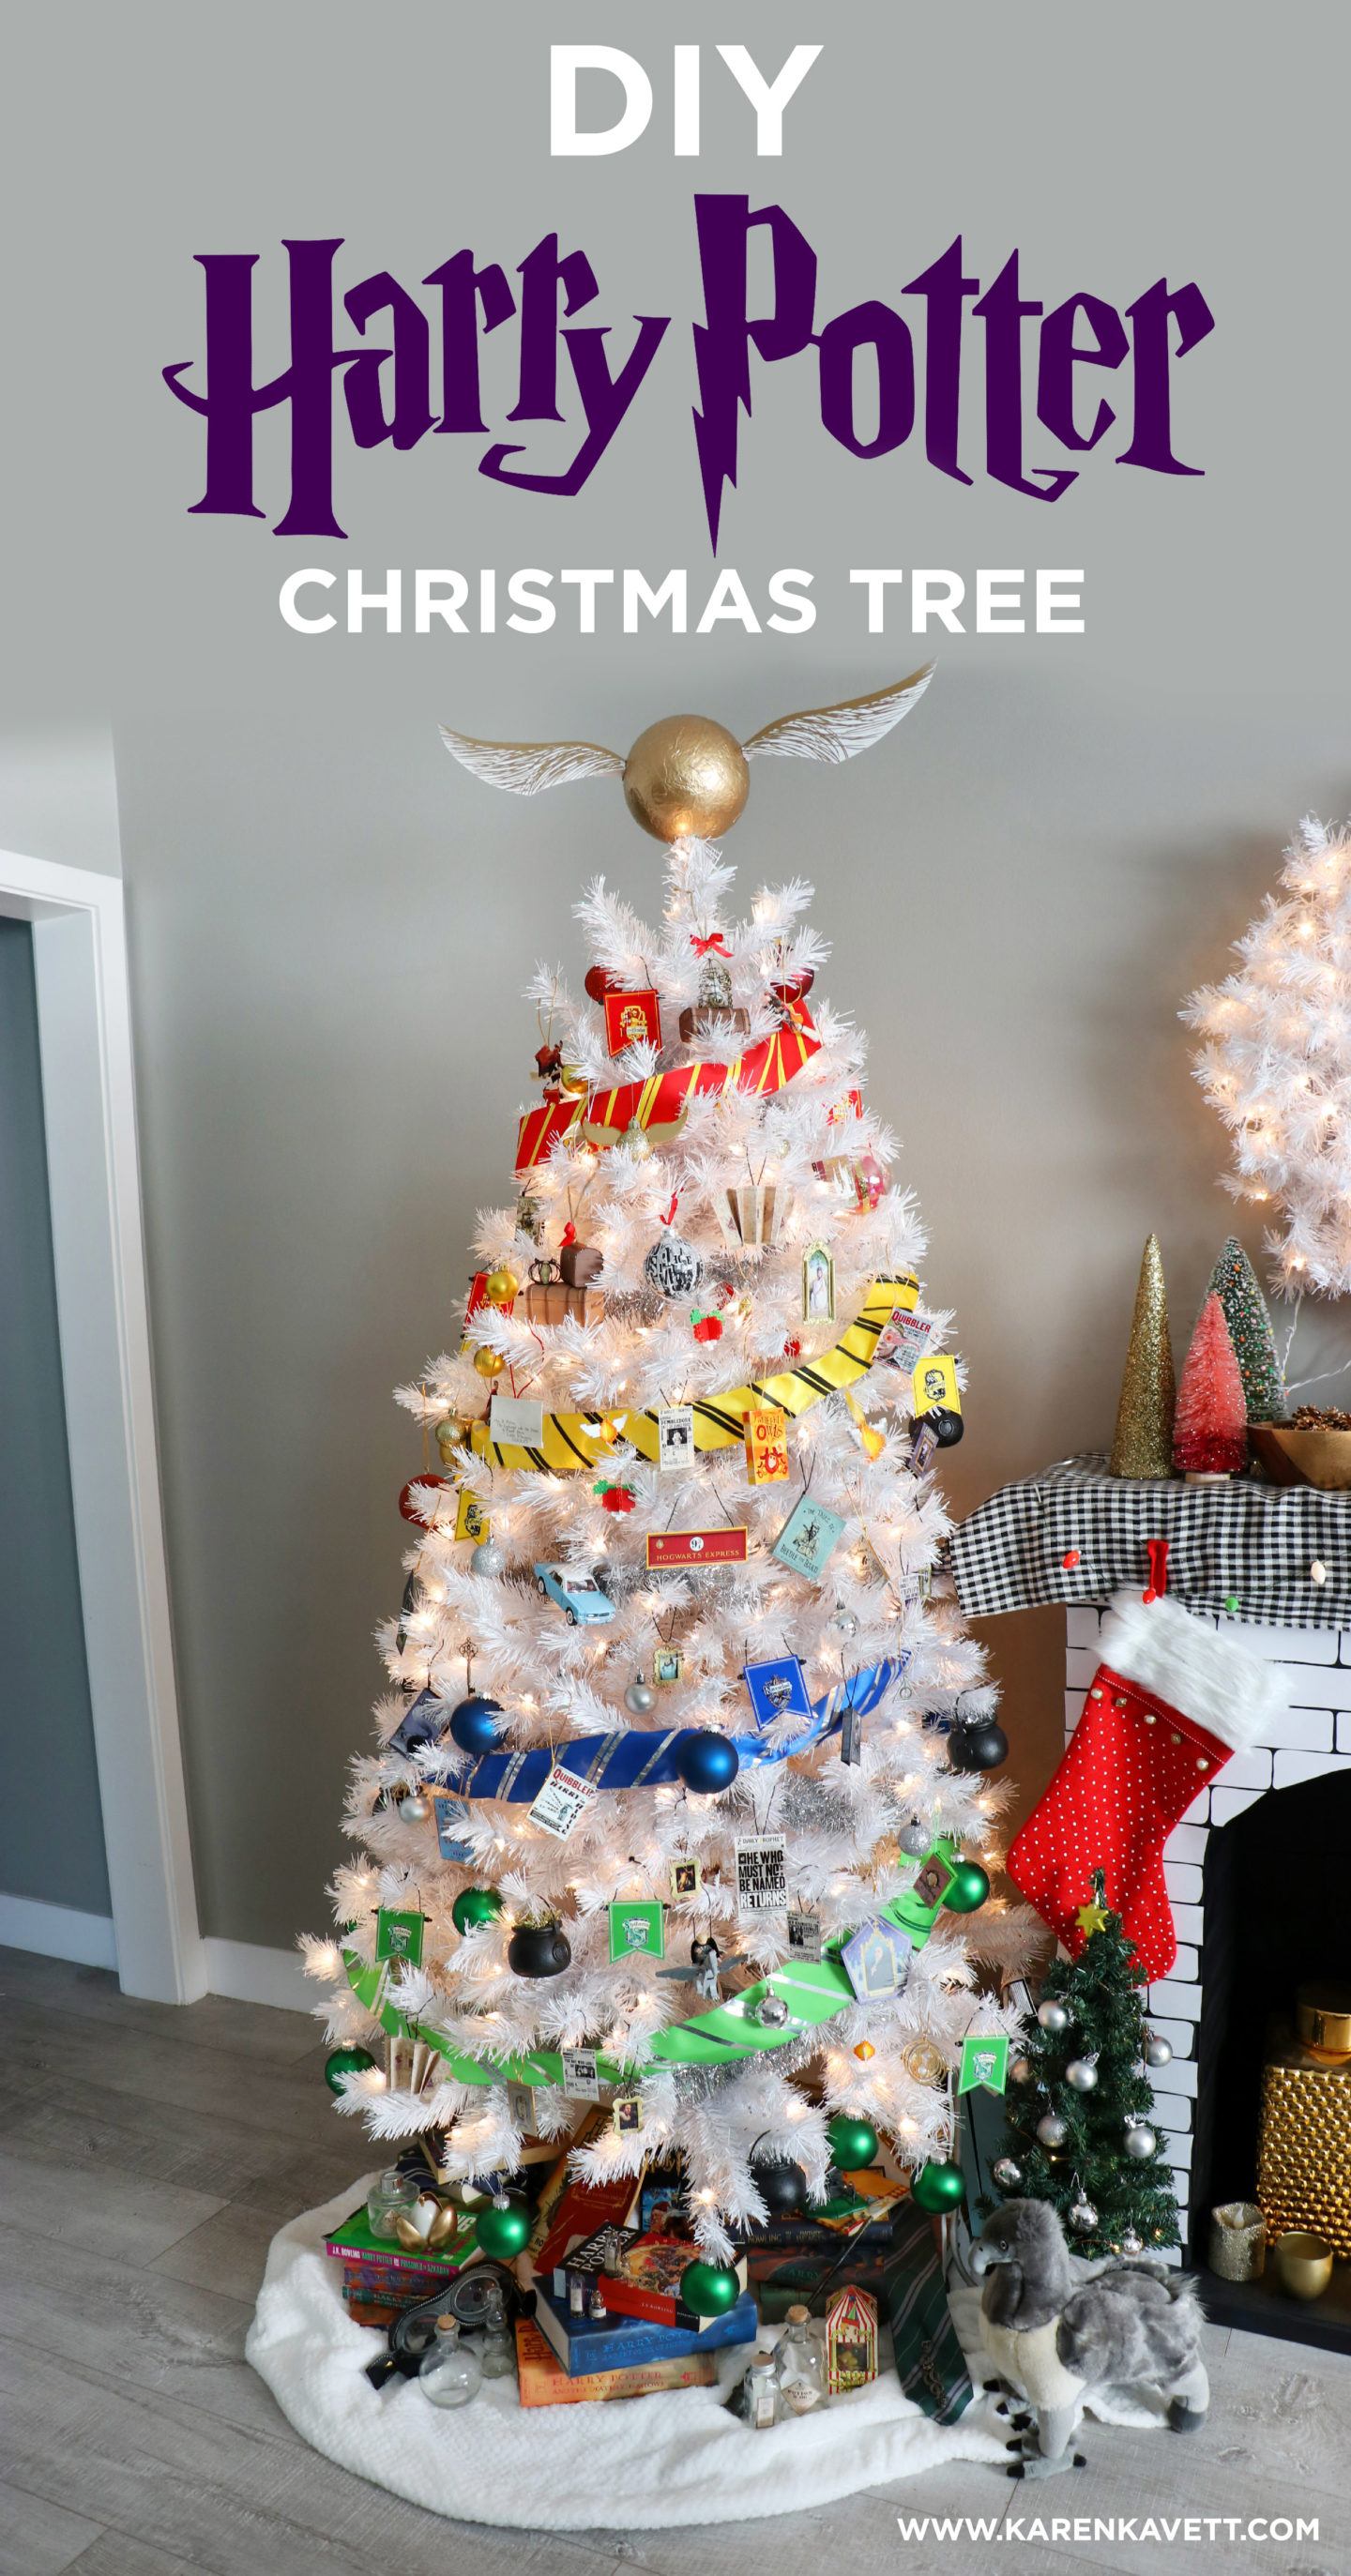 Diy Harry Potter Christmas Tree Karen Kavett